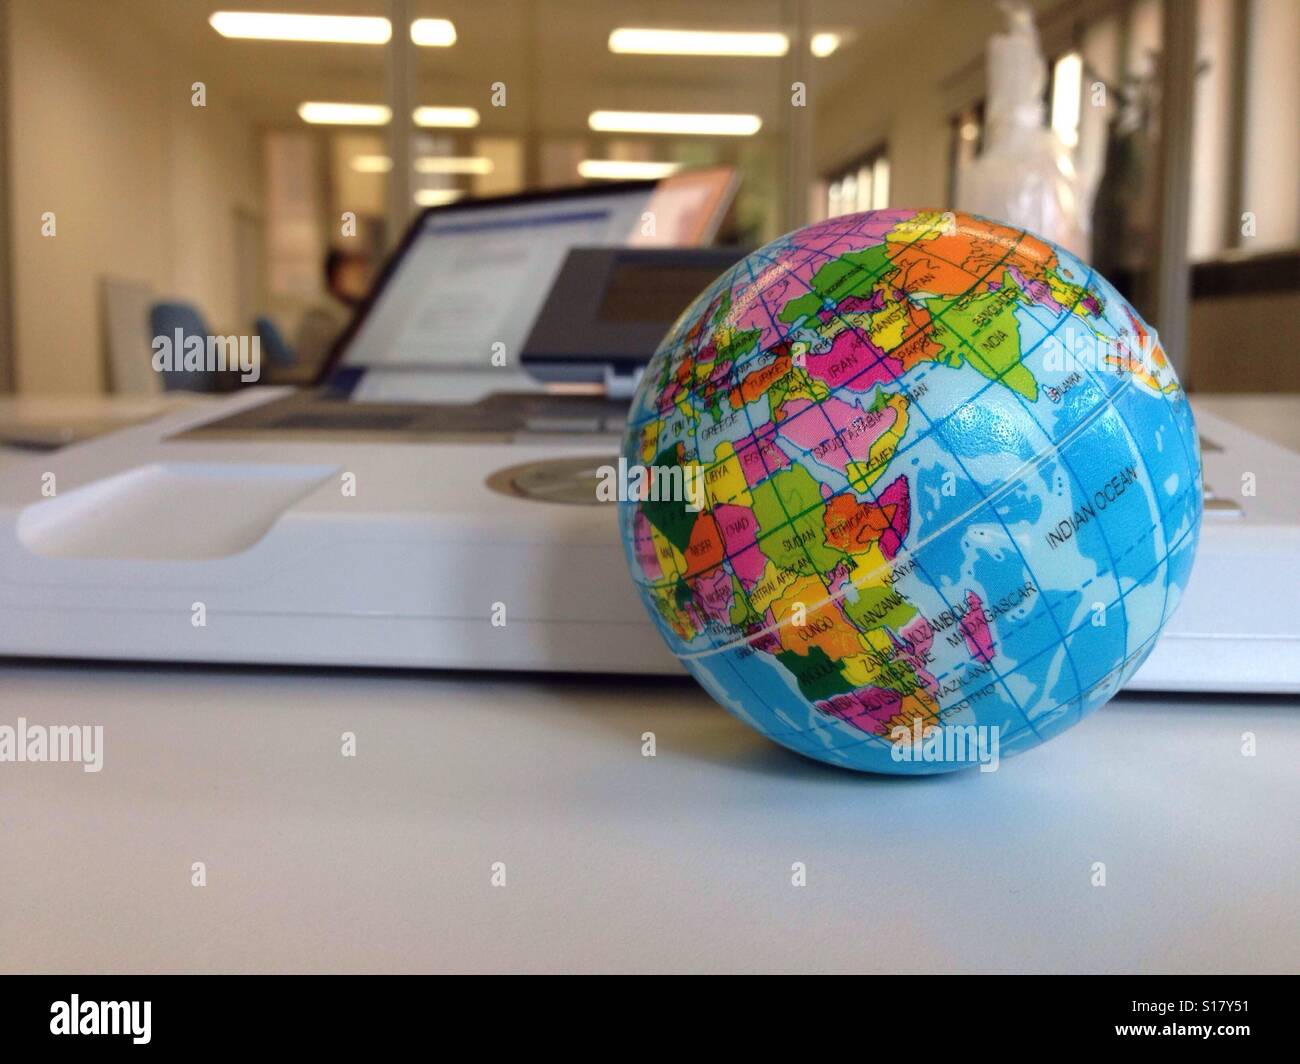 World Globe On An Office Desk, With Telephone And Laptop In Background.    Stock